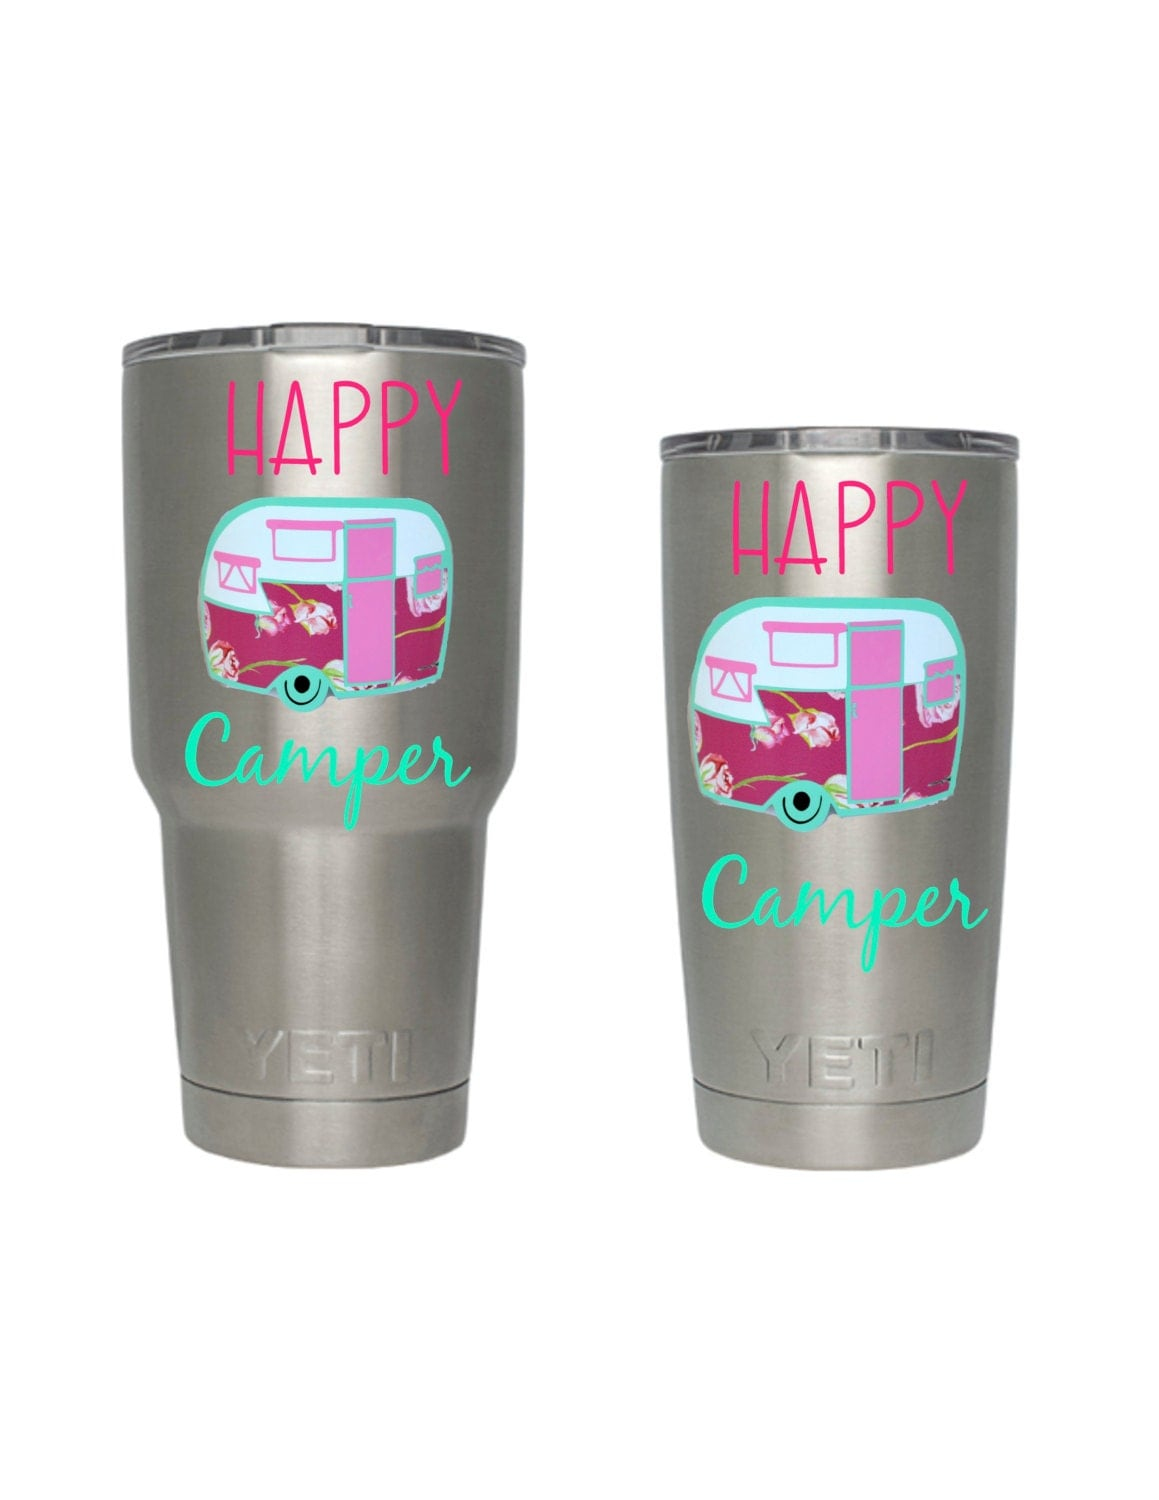 Happy Camper Yeti Tumbler Decal Camper Decal Vinyl Decal - Vinyl cup decals